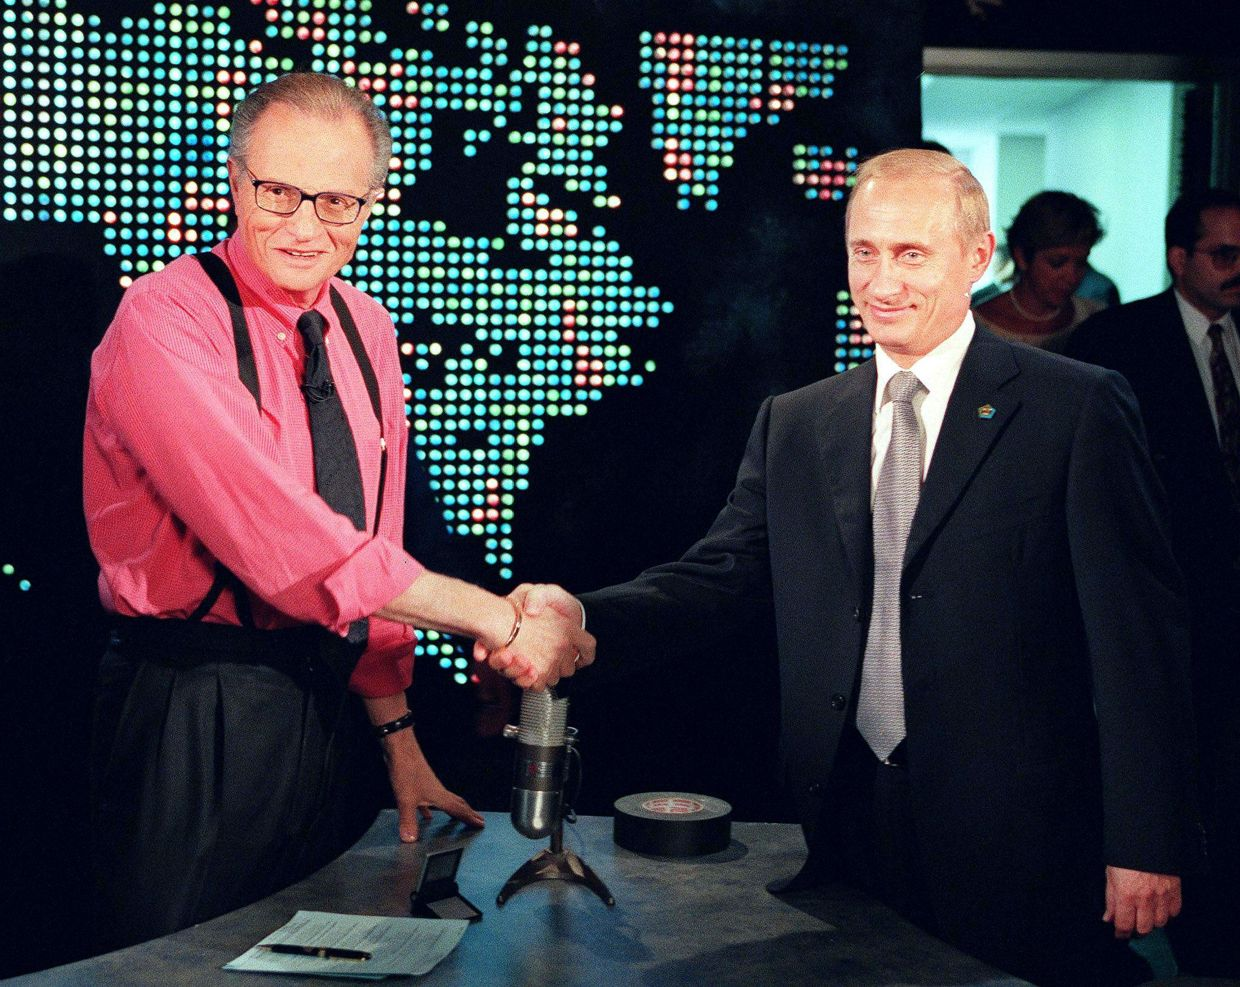 Larry King with Russian President Vladimir Putin in 2000. Photo: AFP